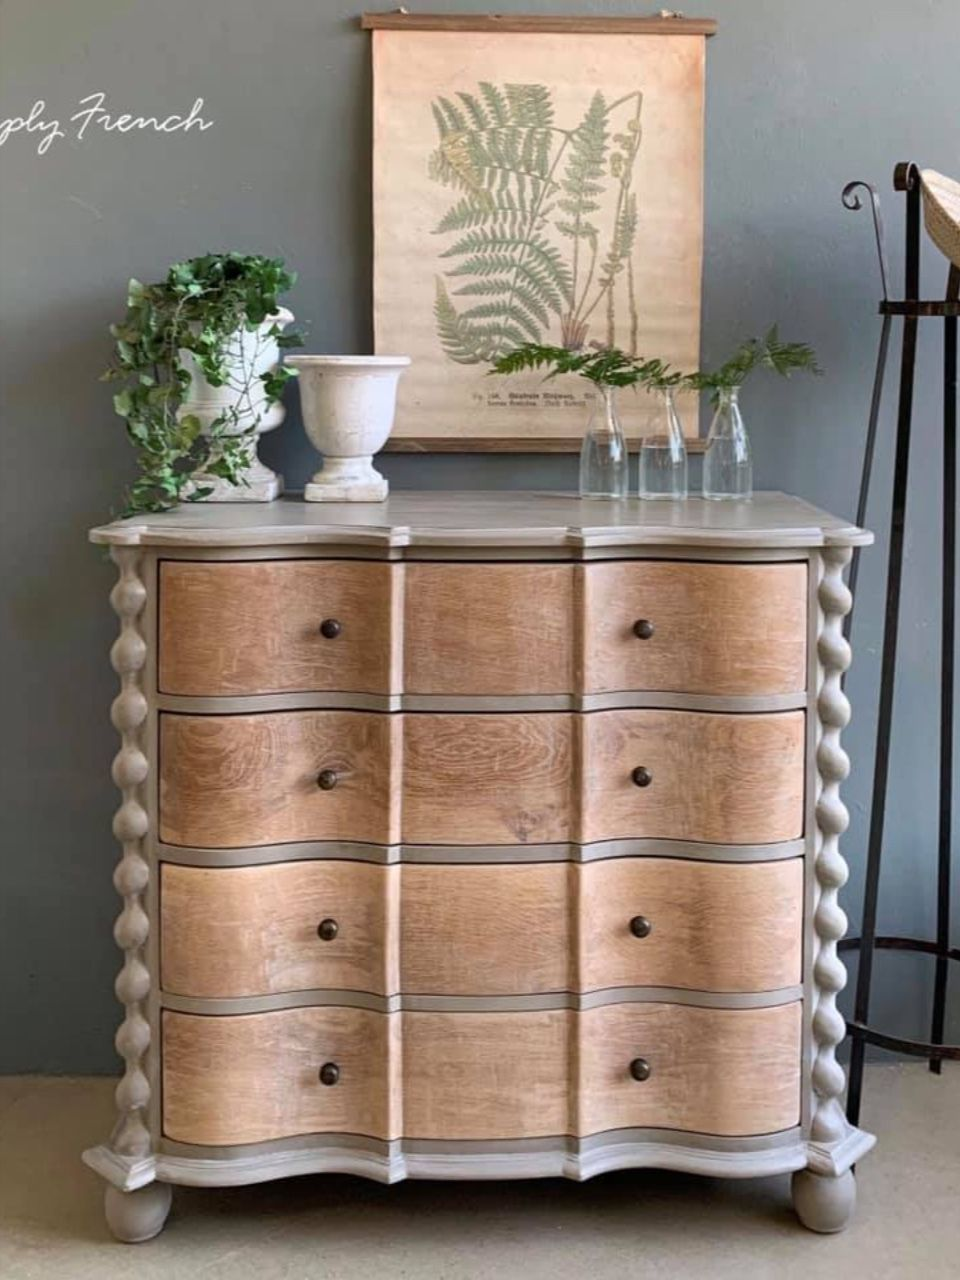 Neutral Khaki Chalk Paint French Linen Annie Sloan Painted Furniture Refinishing Colorful